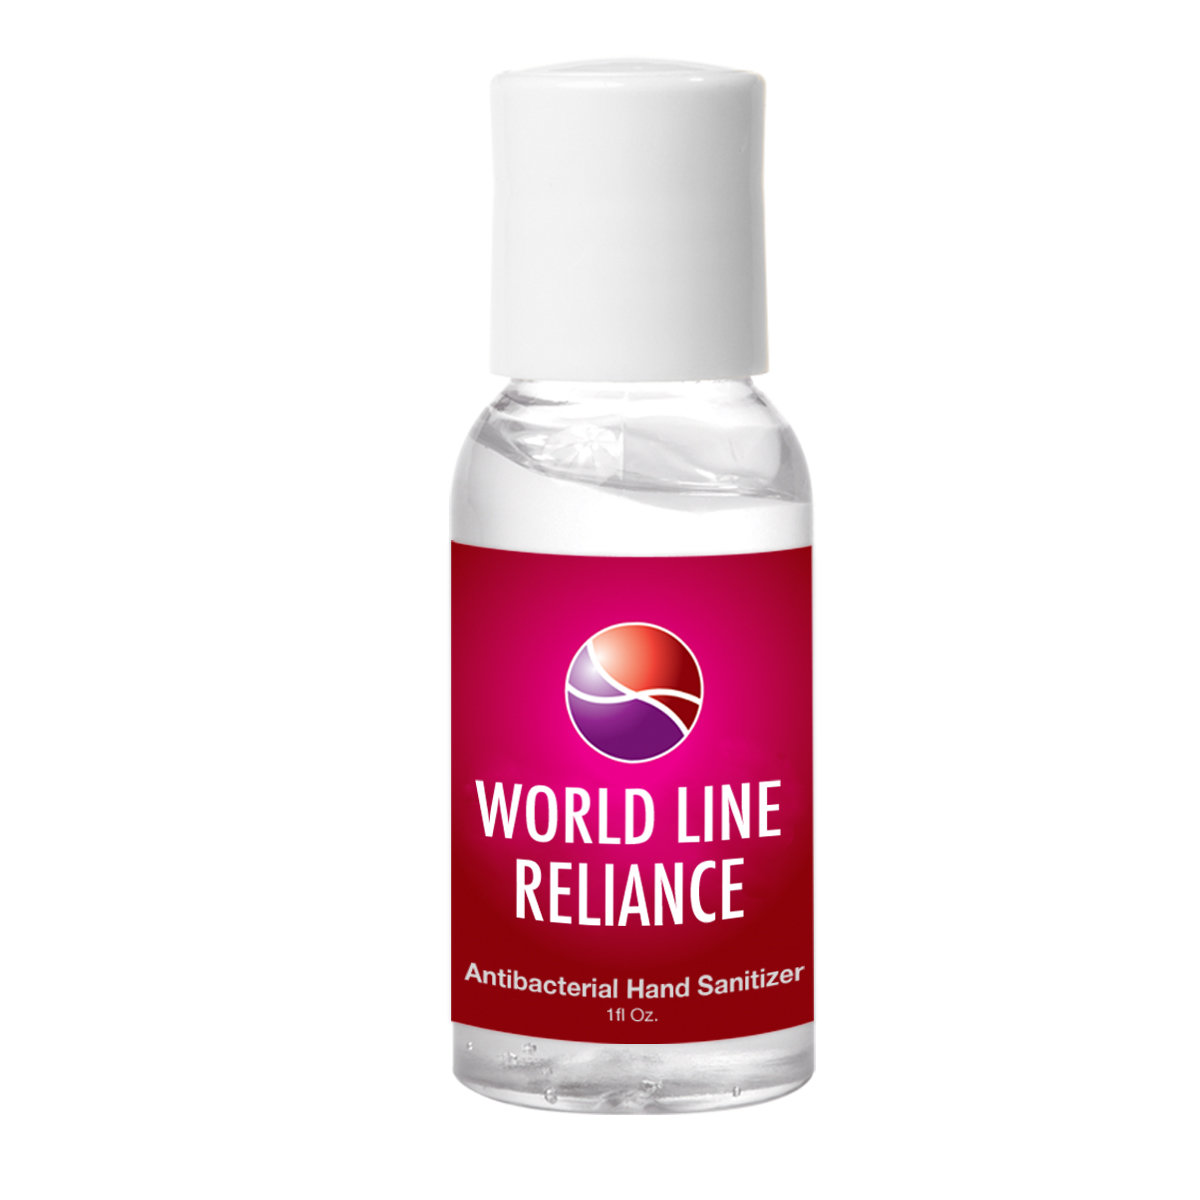 1 Oz. Hand Sanitizer.  As low as $1.30 each.